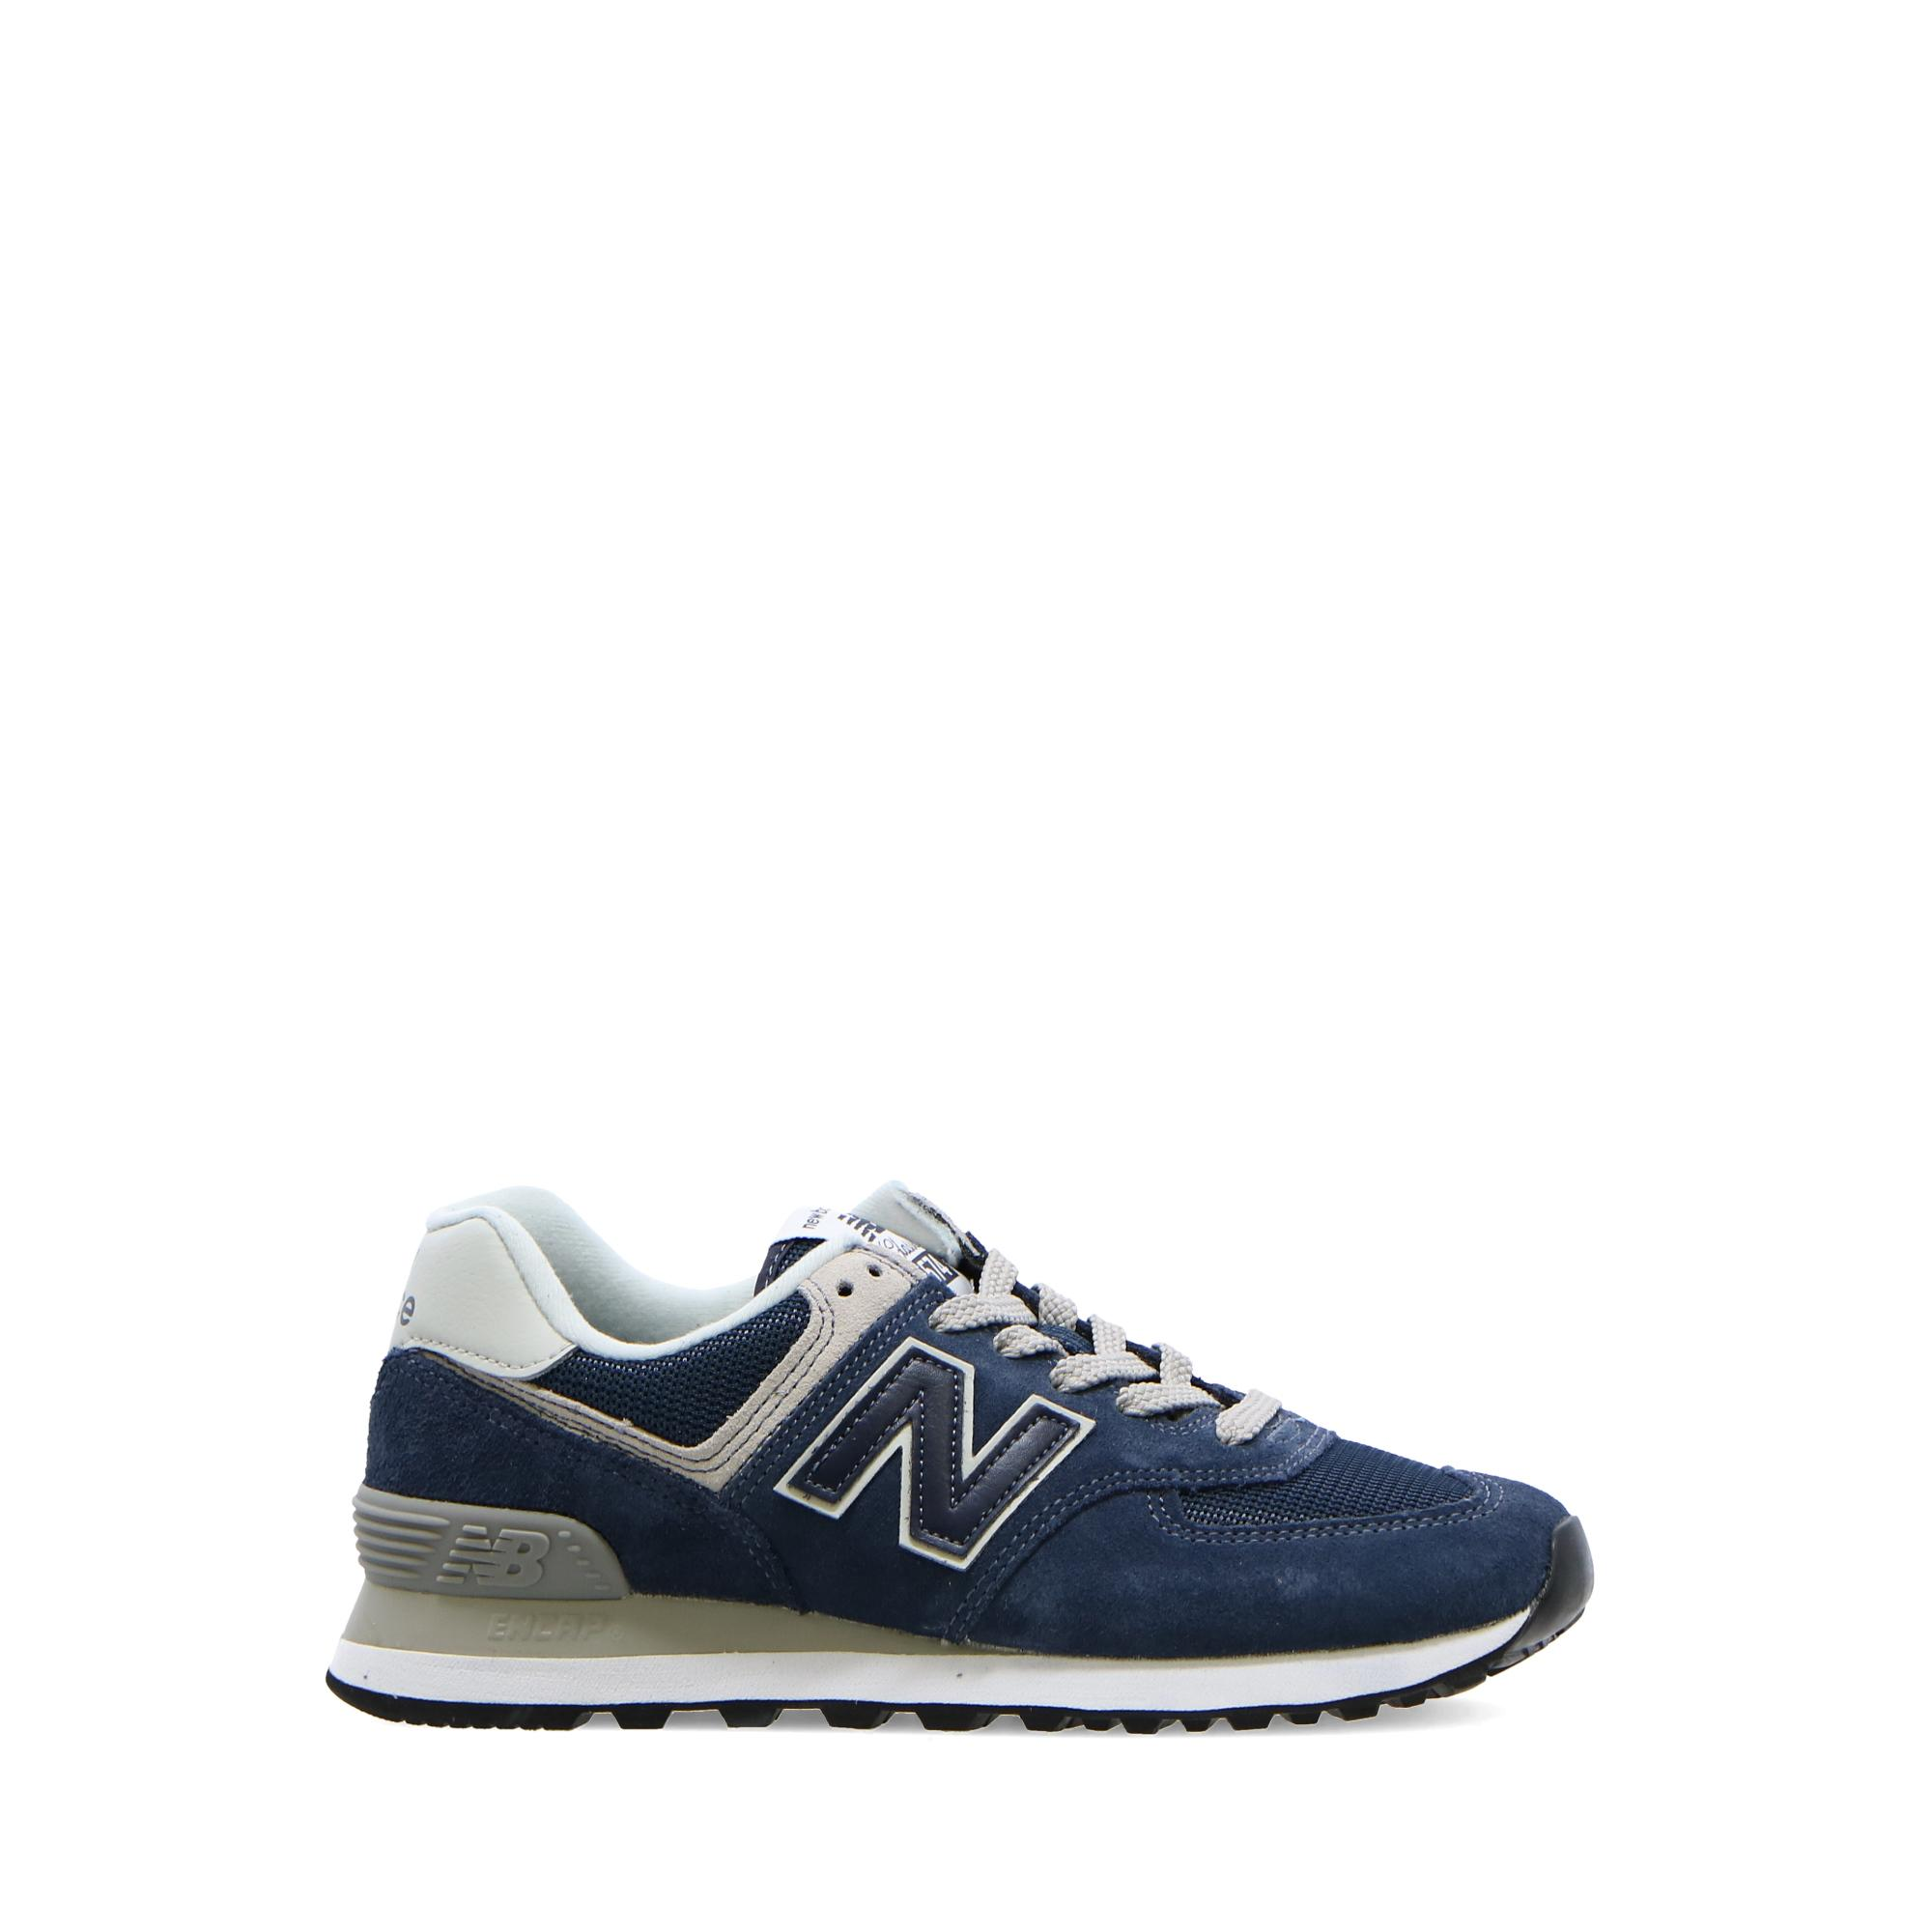 New Balance 574 Metallic Leather NAVY